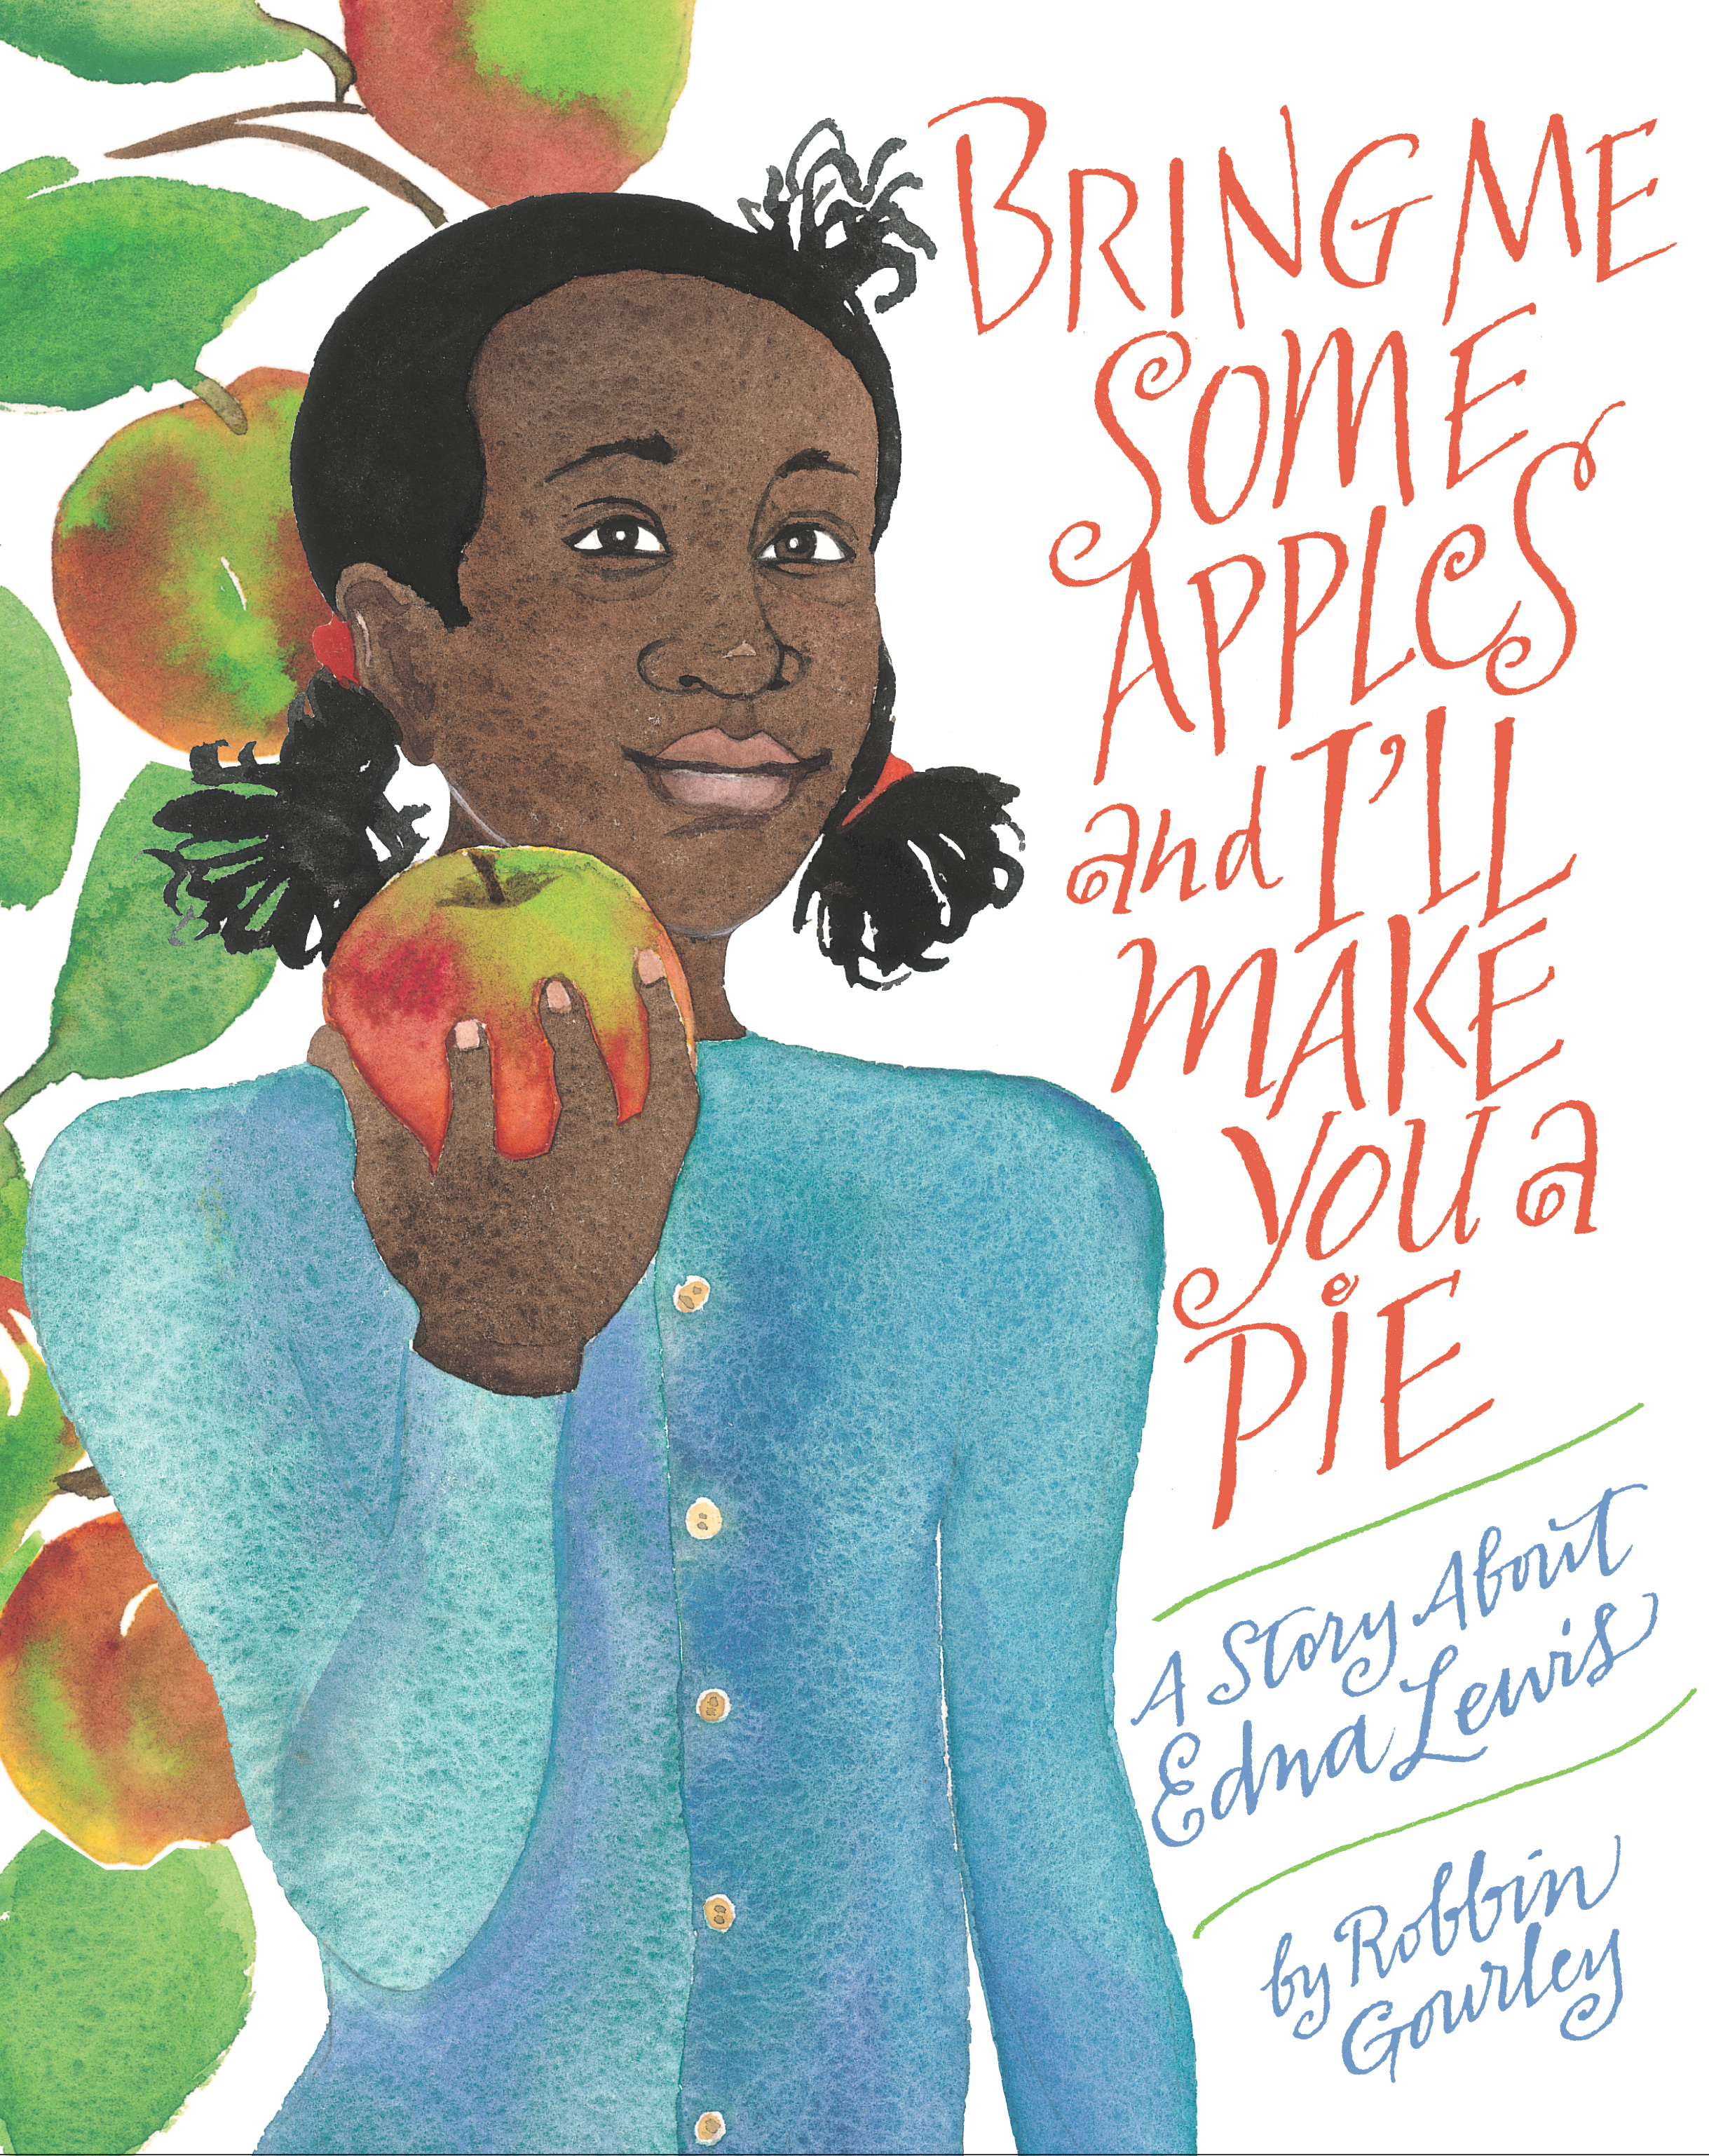 Bring Me Some Apples and I'll Make You a Pie-9780618158362